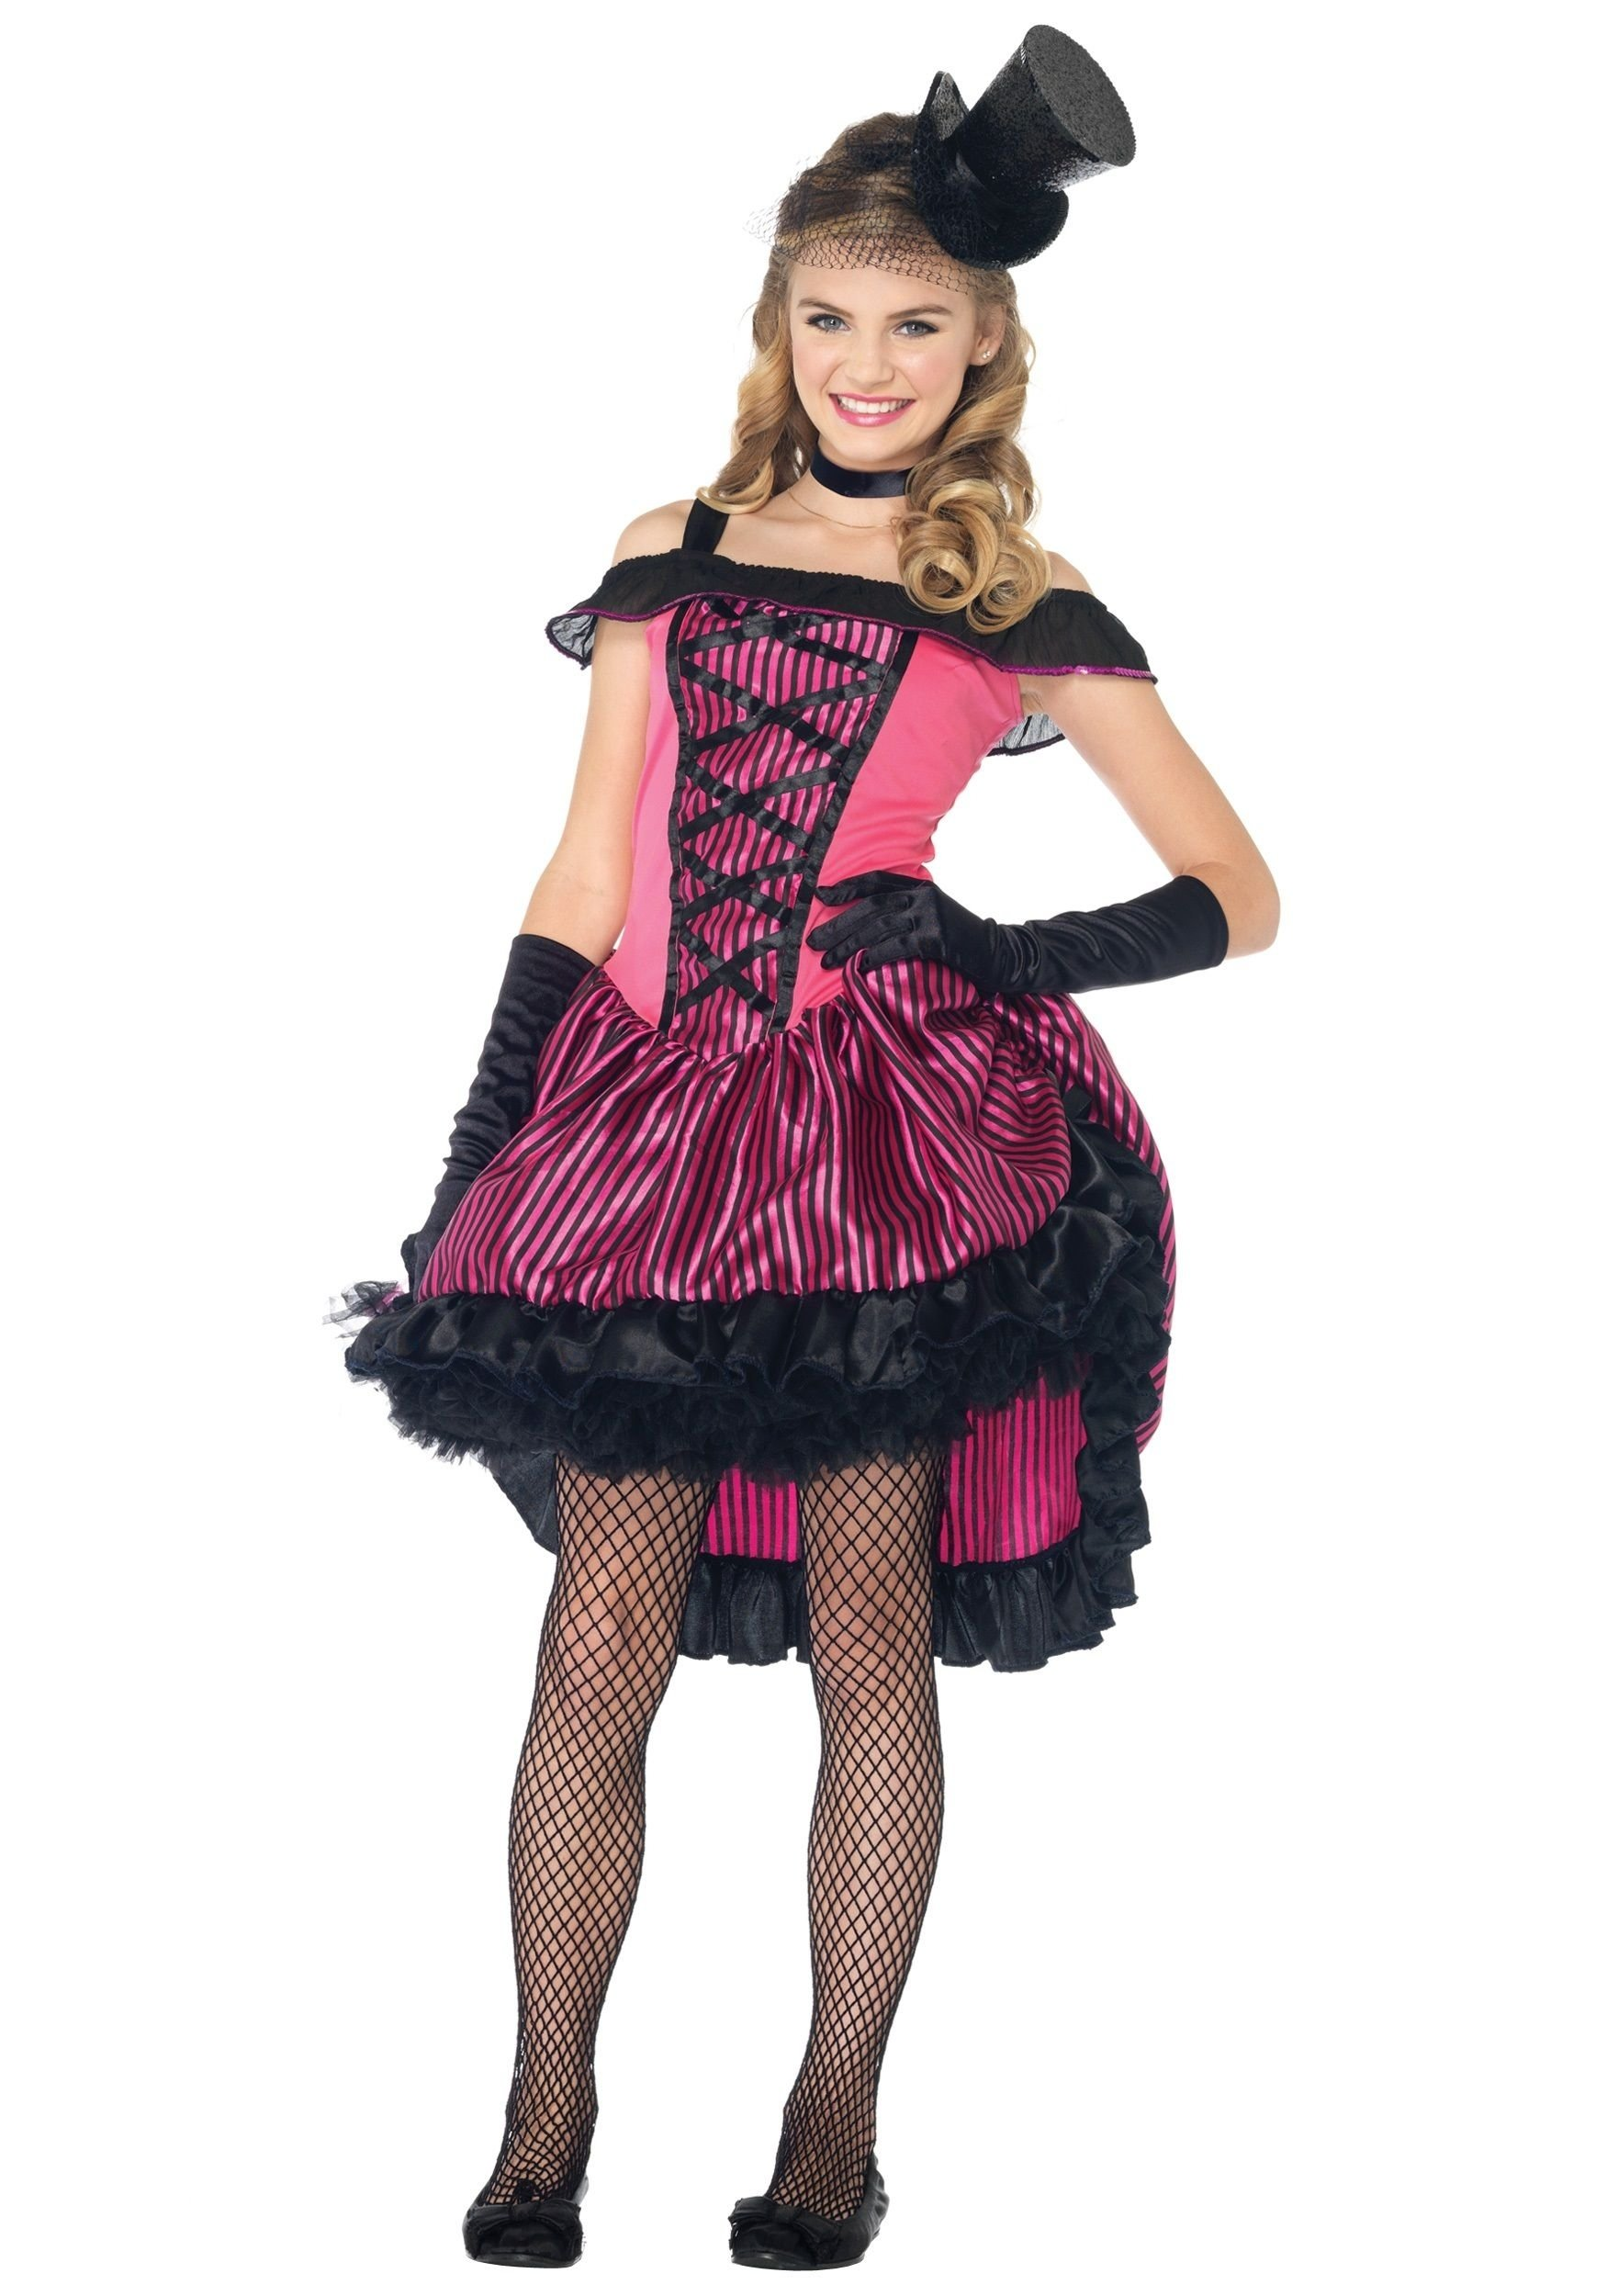 10 Nice Ideas For Halloween Costumes For Girls teen halloween girls costumes girls halloween costumes 2014  sc 1 st  Unique Ideas 2018 : halloween girls costume  - Germanpascual.Com